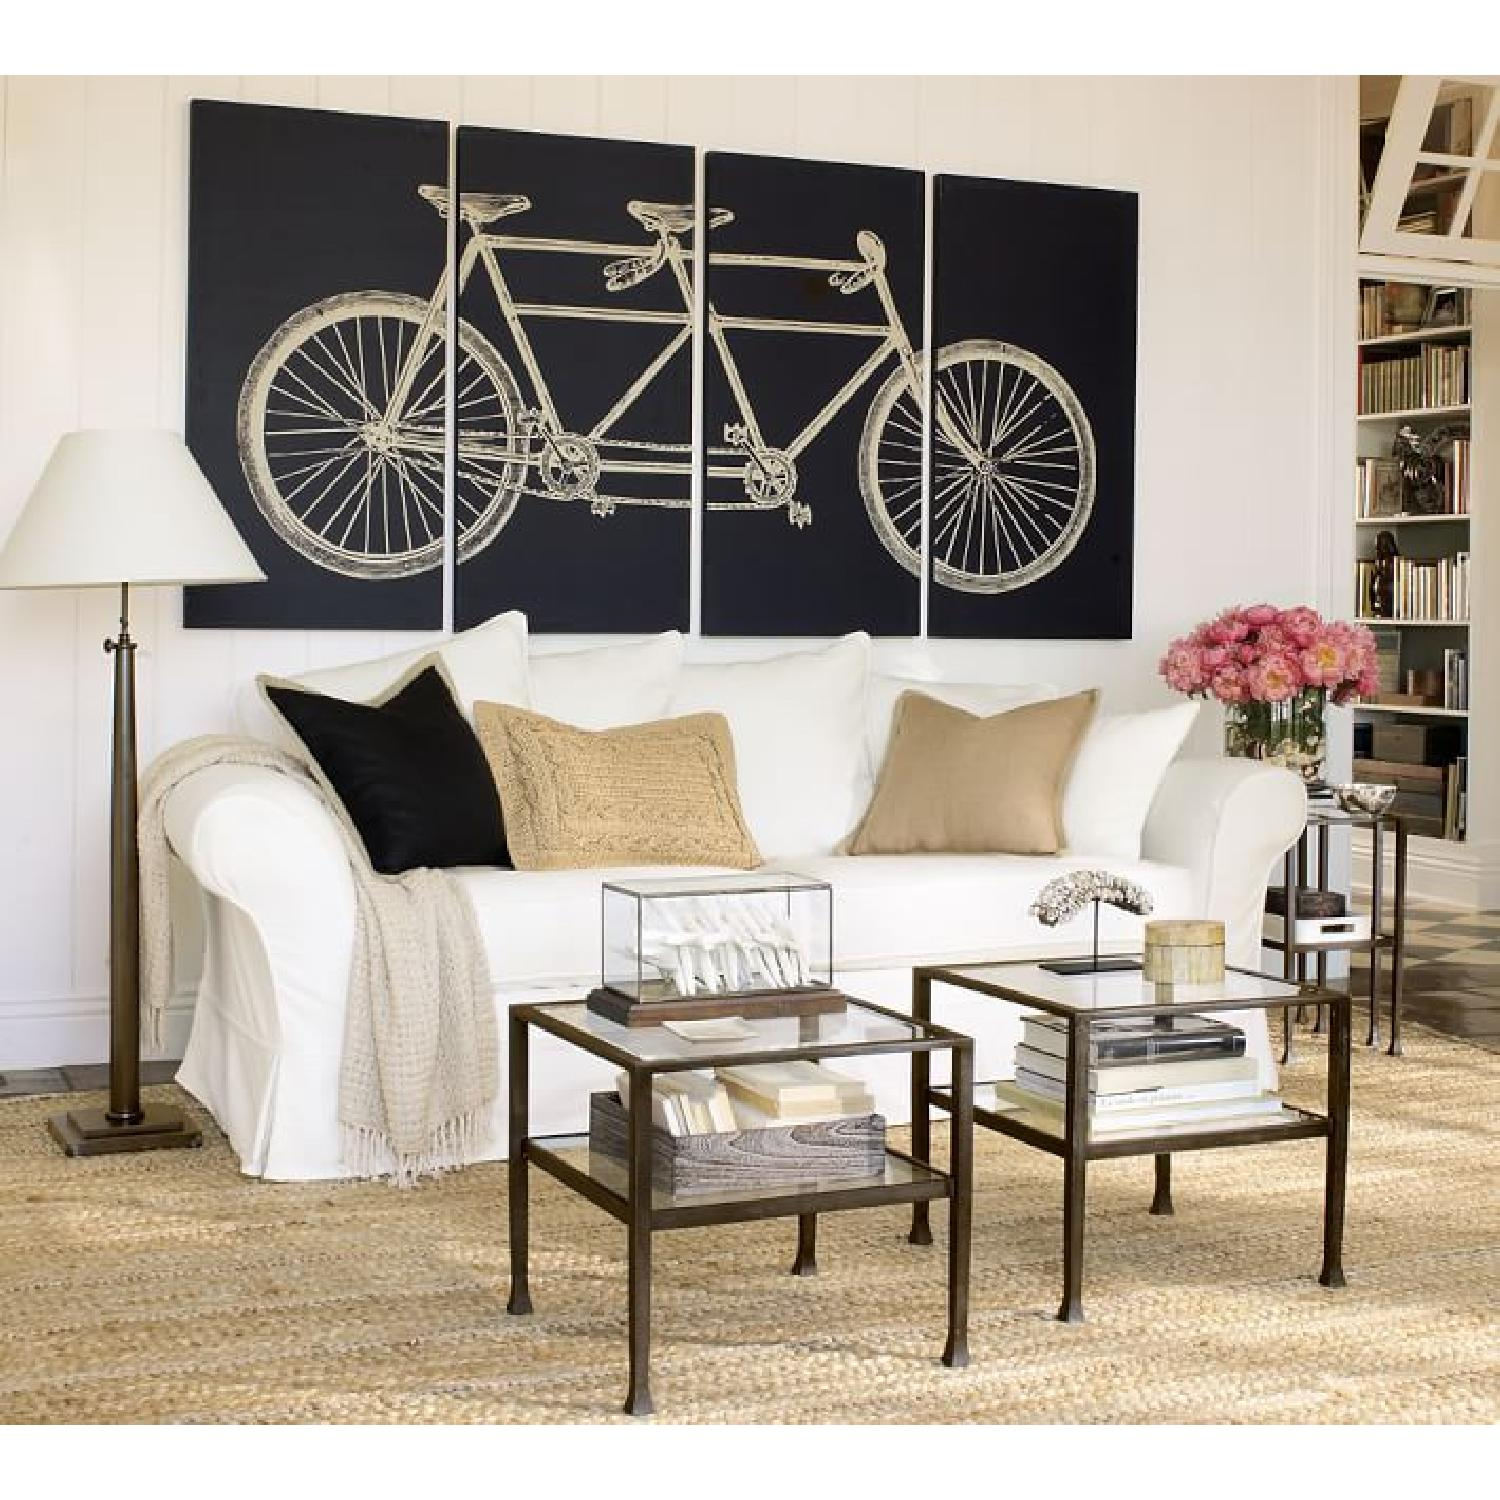 Iron Framed Pottery Barn Side Tables with Glass Top & Shelf - image-1